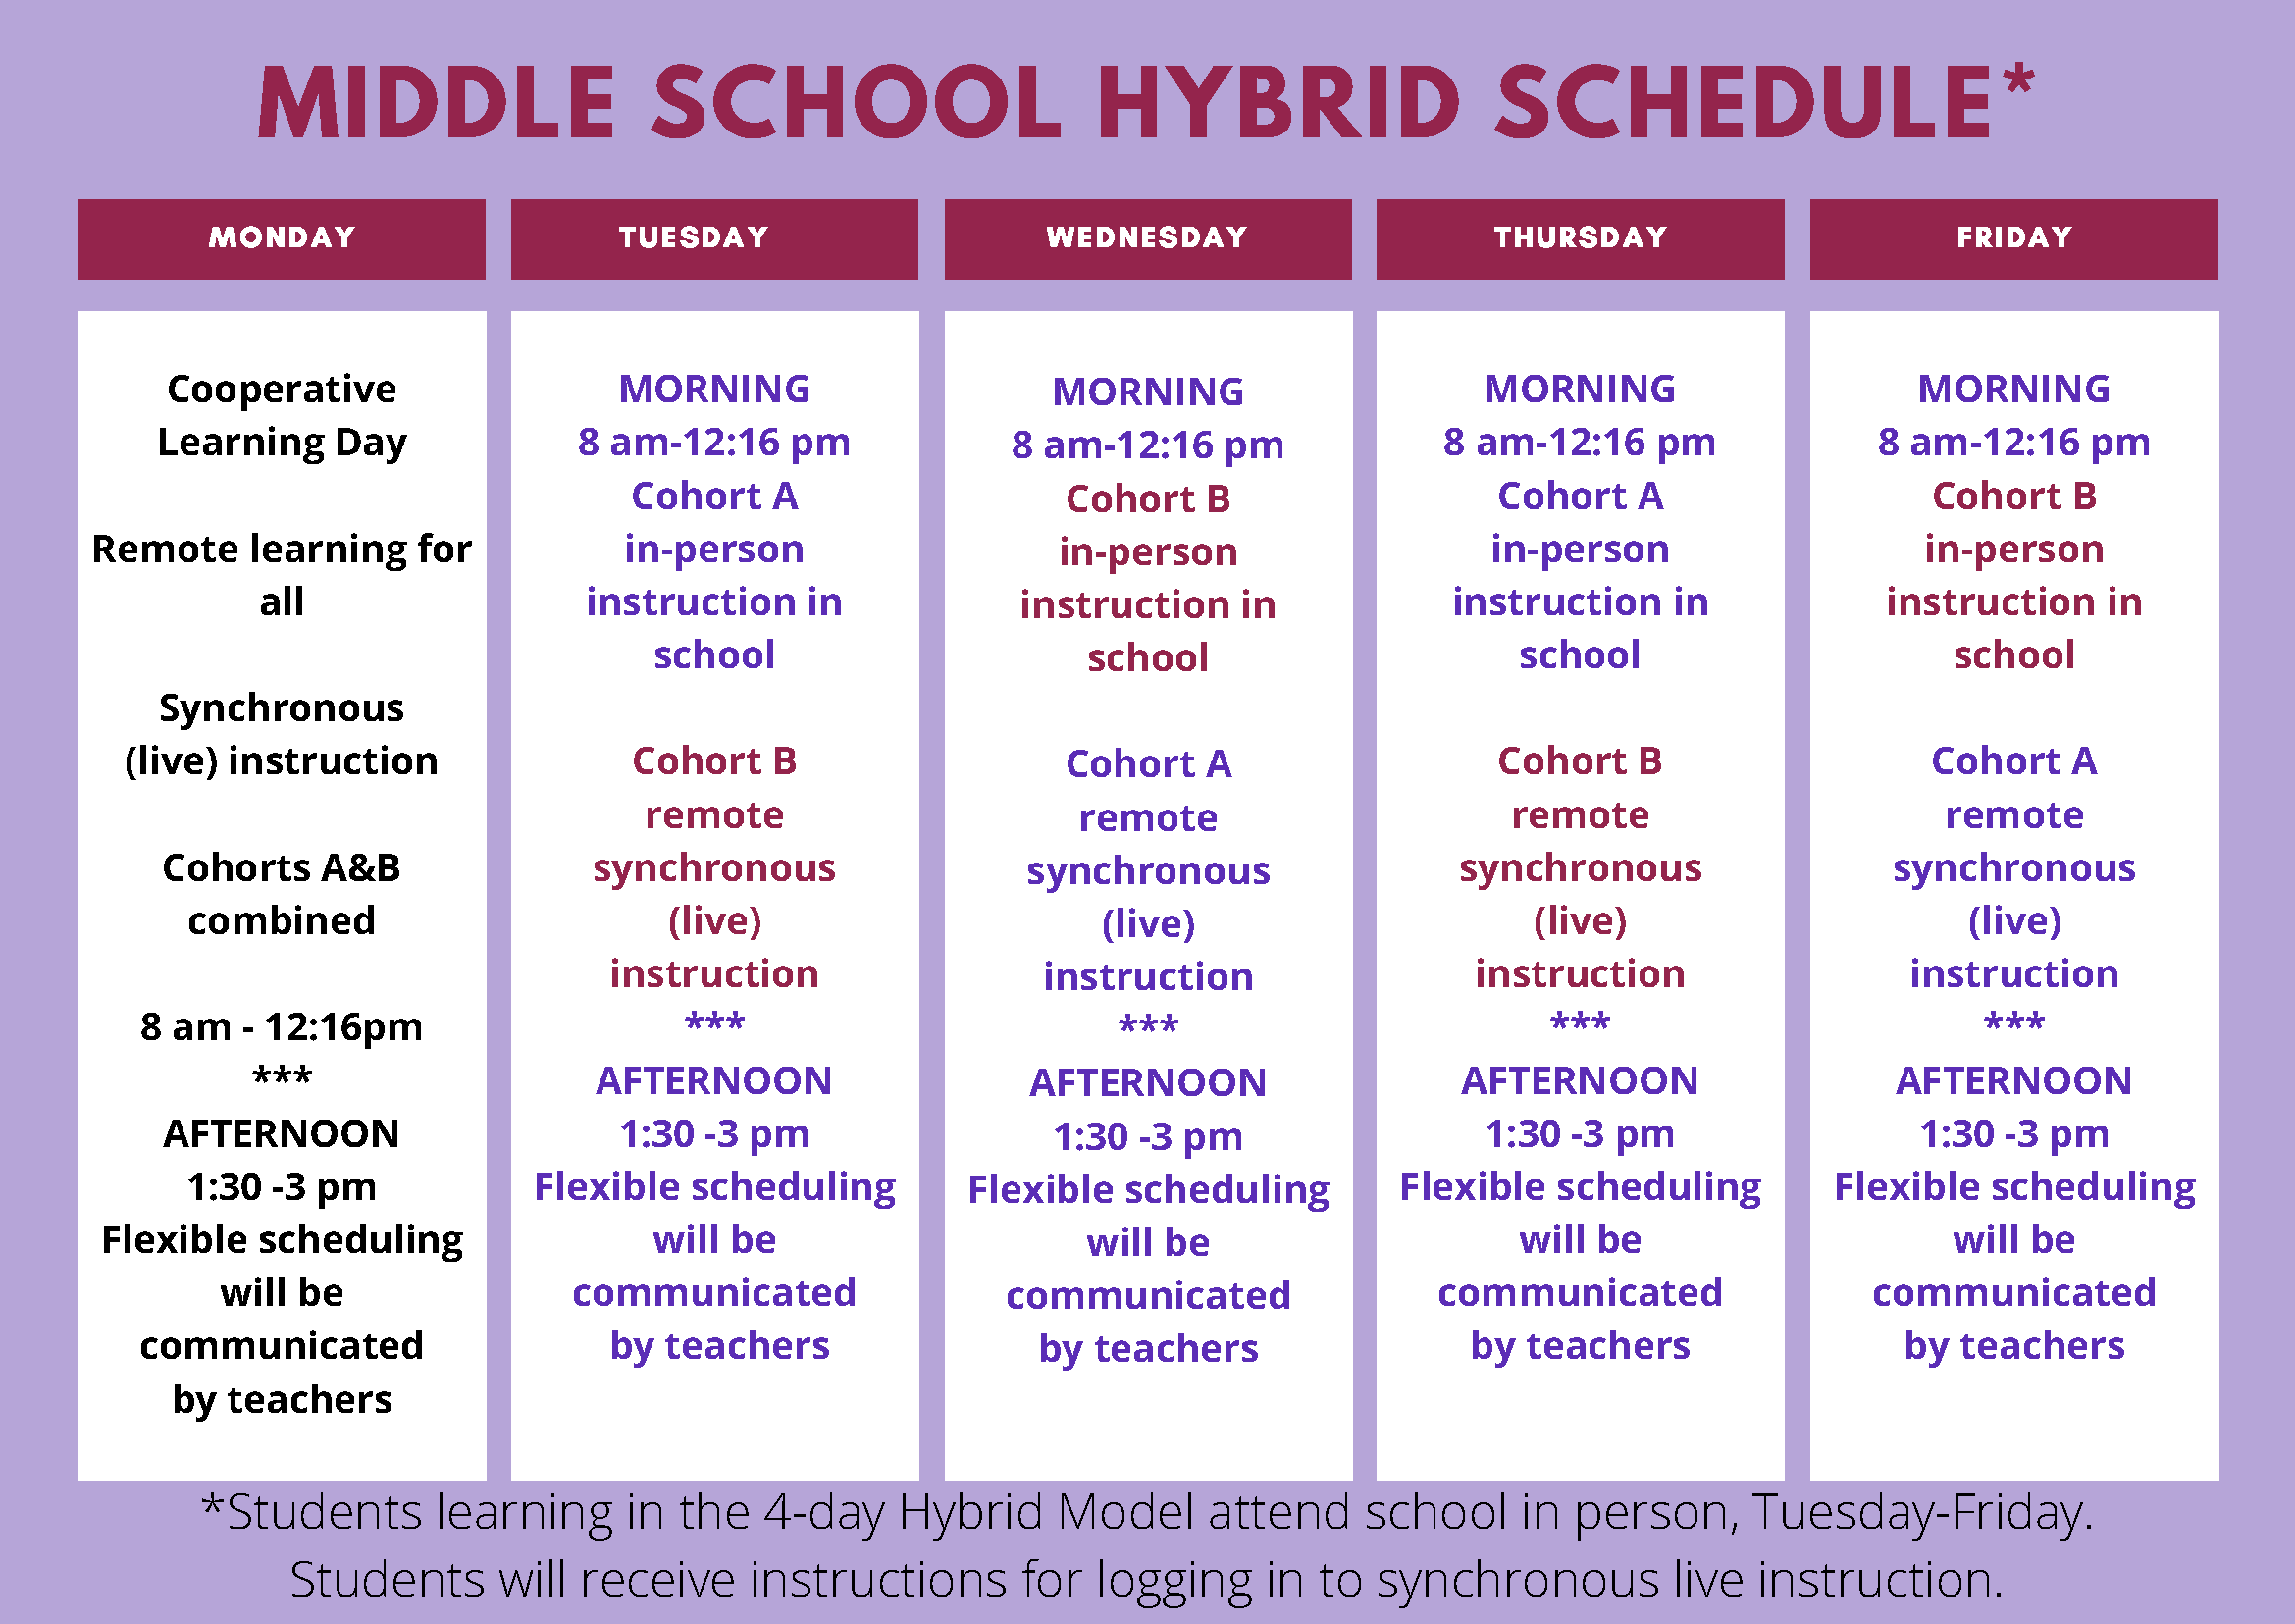 Middle School Hybrid Schedule